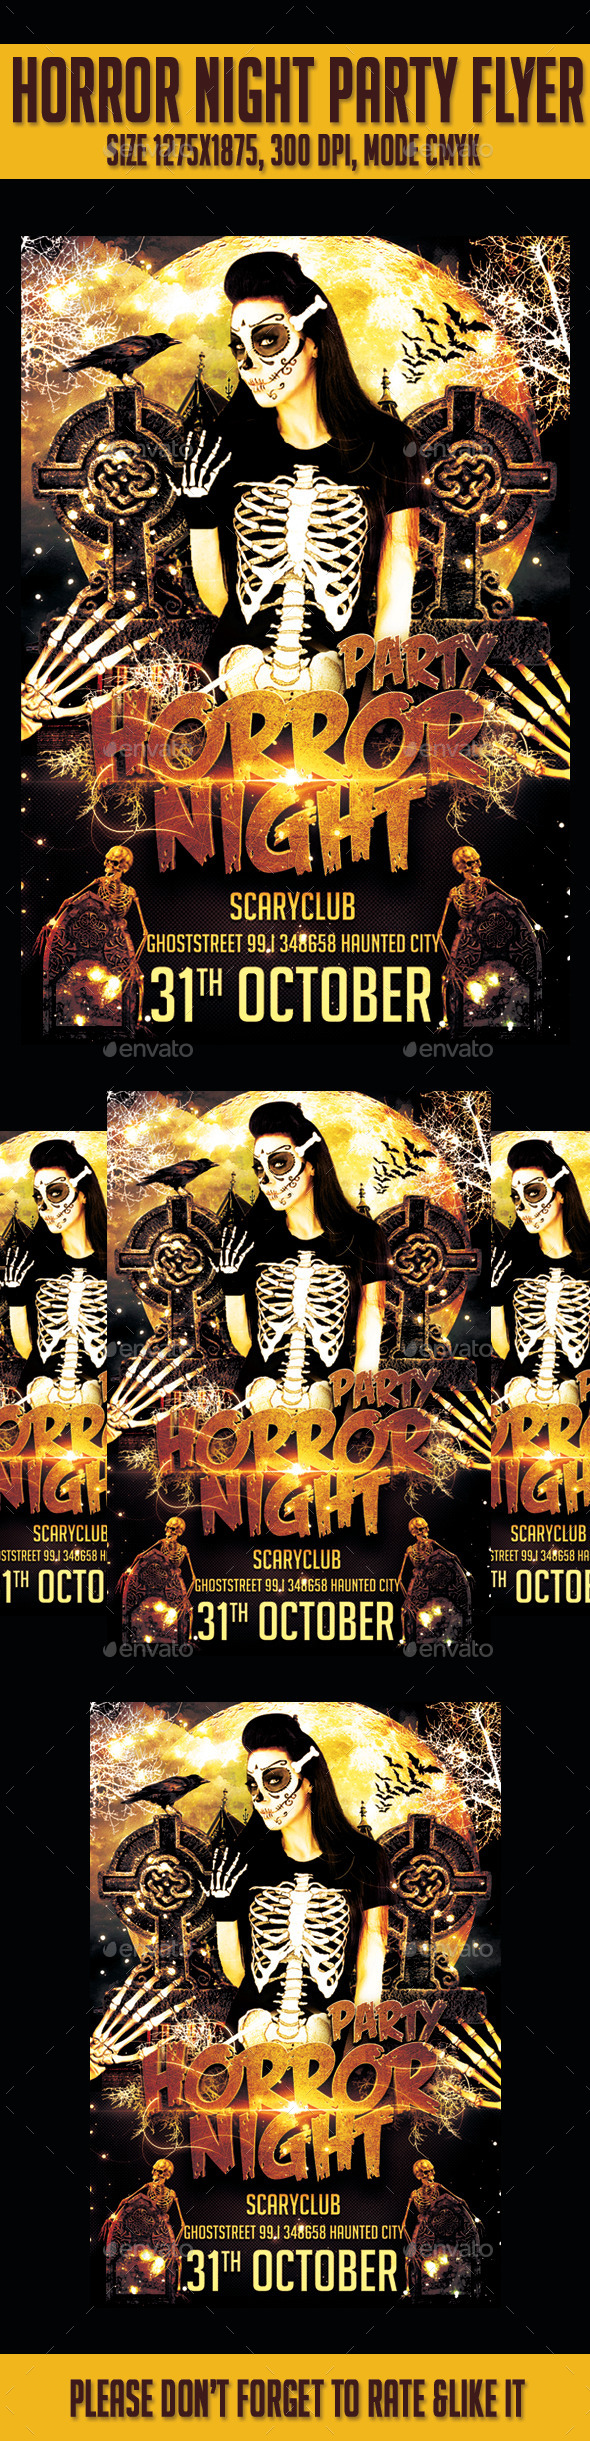 Horror Night  Party Flyer Template - Flyers Print Templates